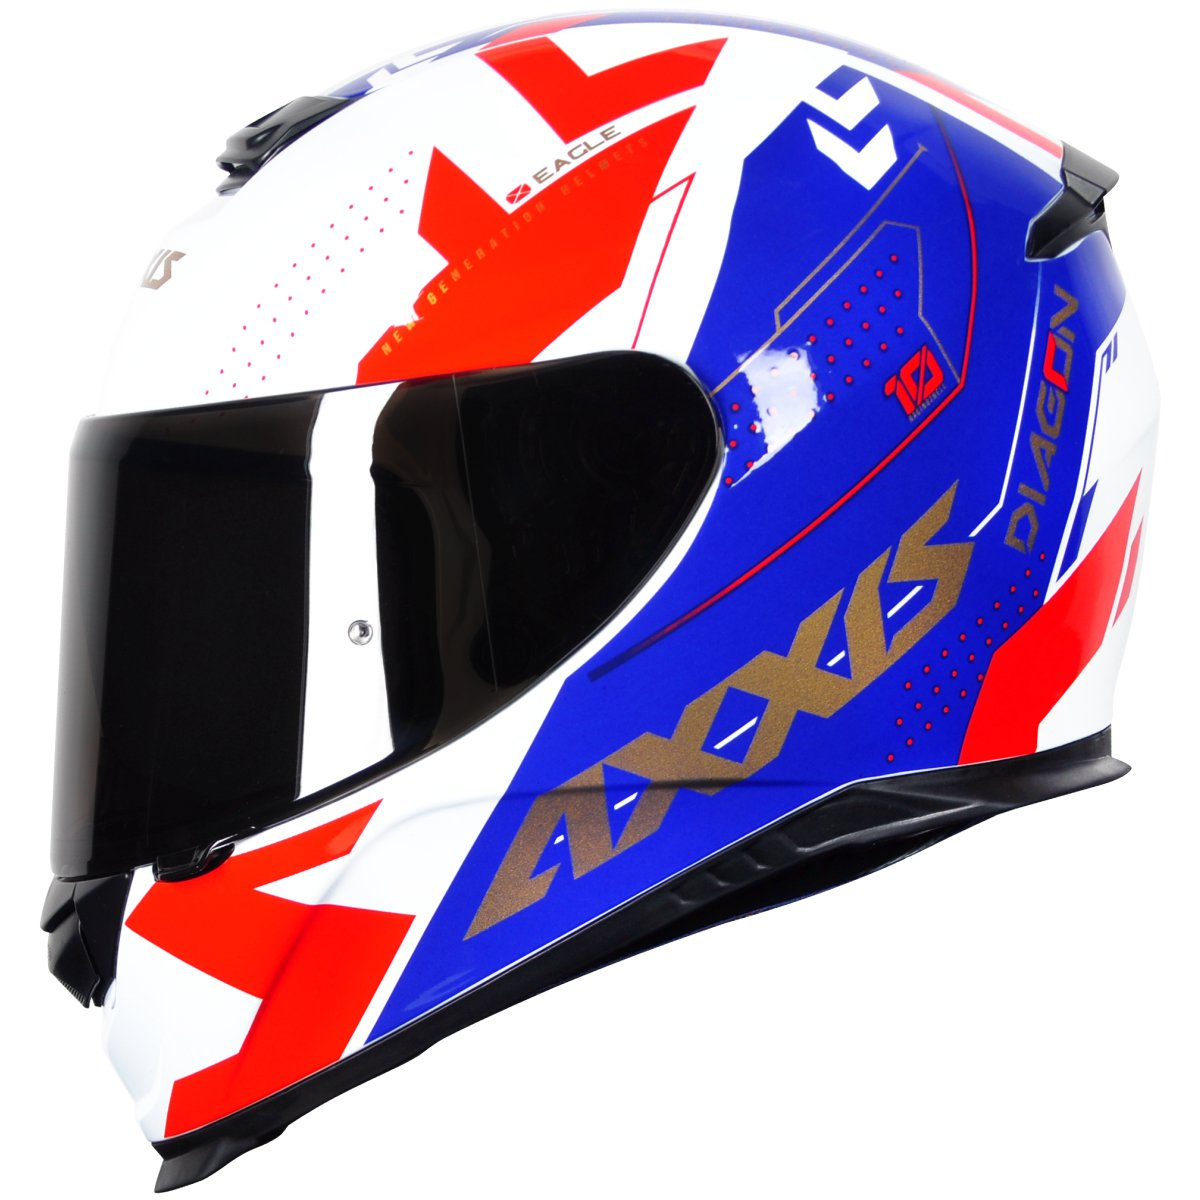 CAPACETE MOTOCICLISTA AXXIS EAGLE DIAGON GLOSS WHITE/BLUE/RED